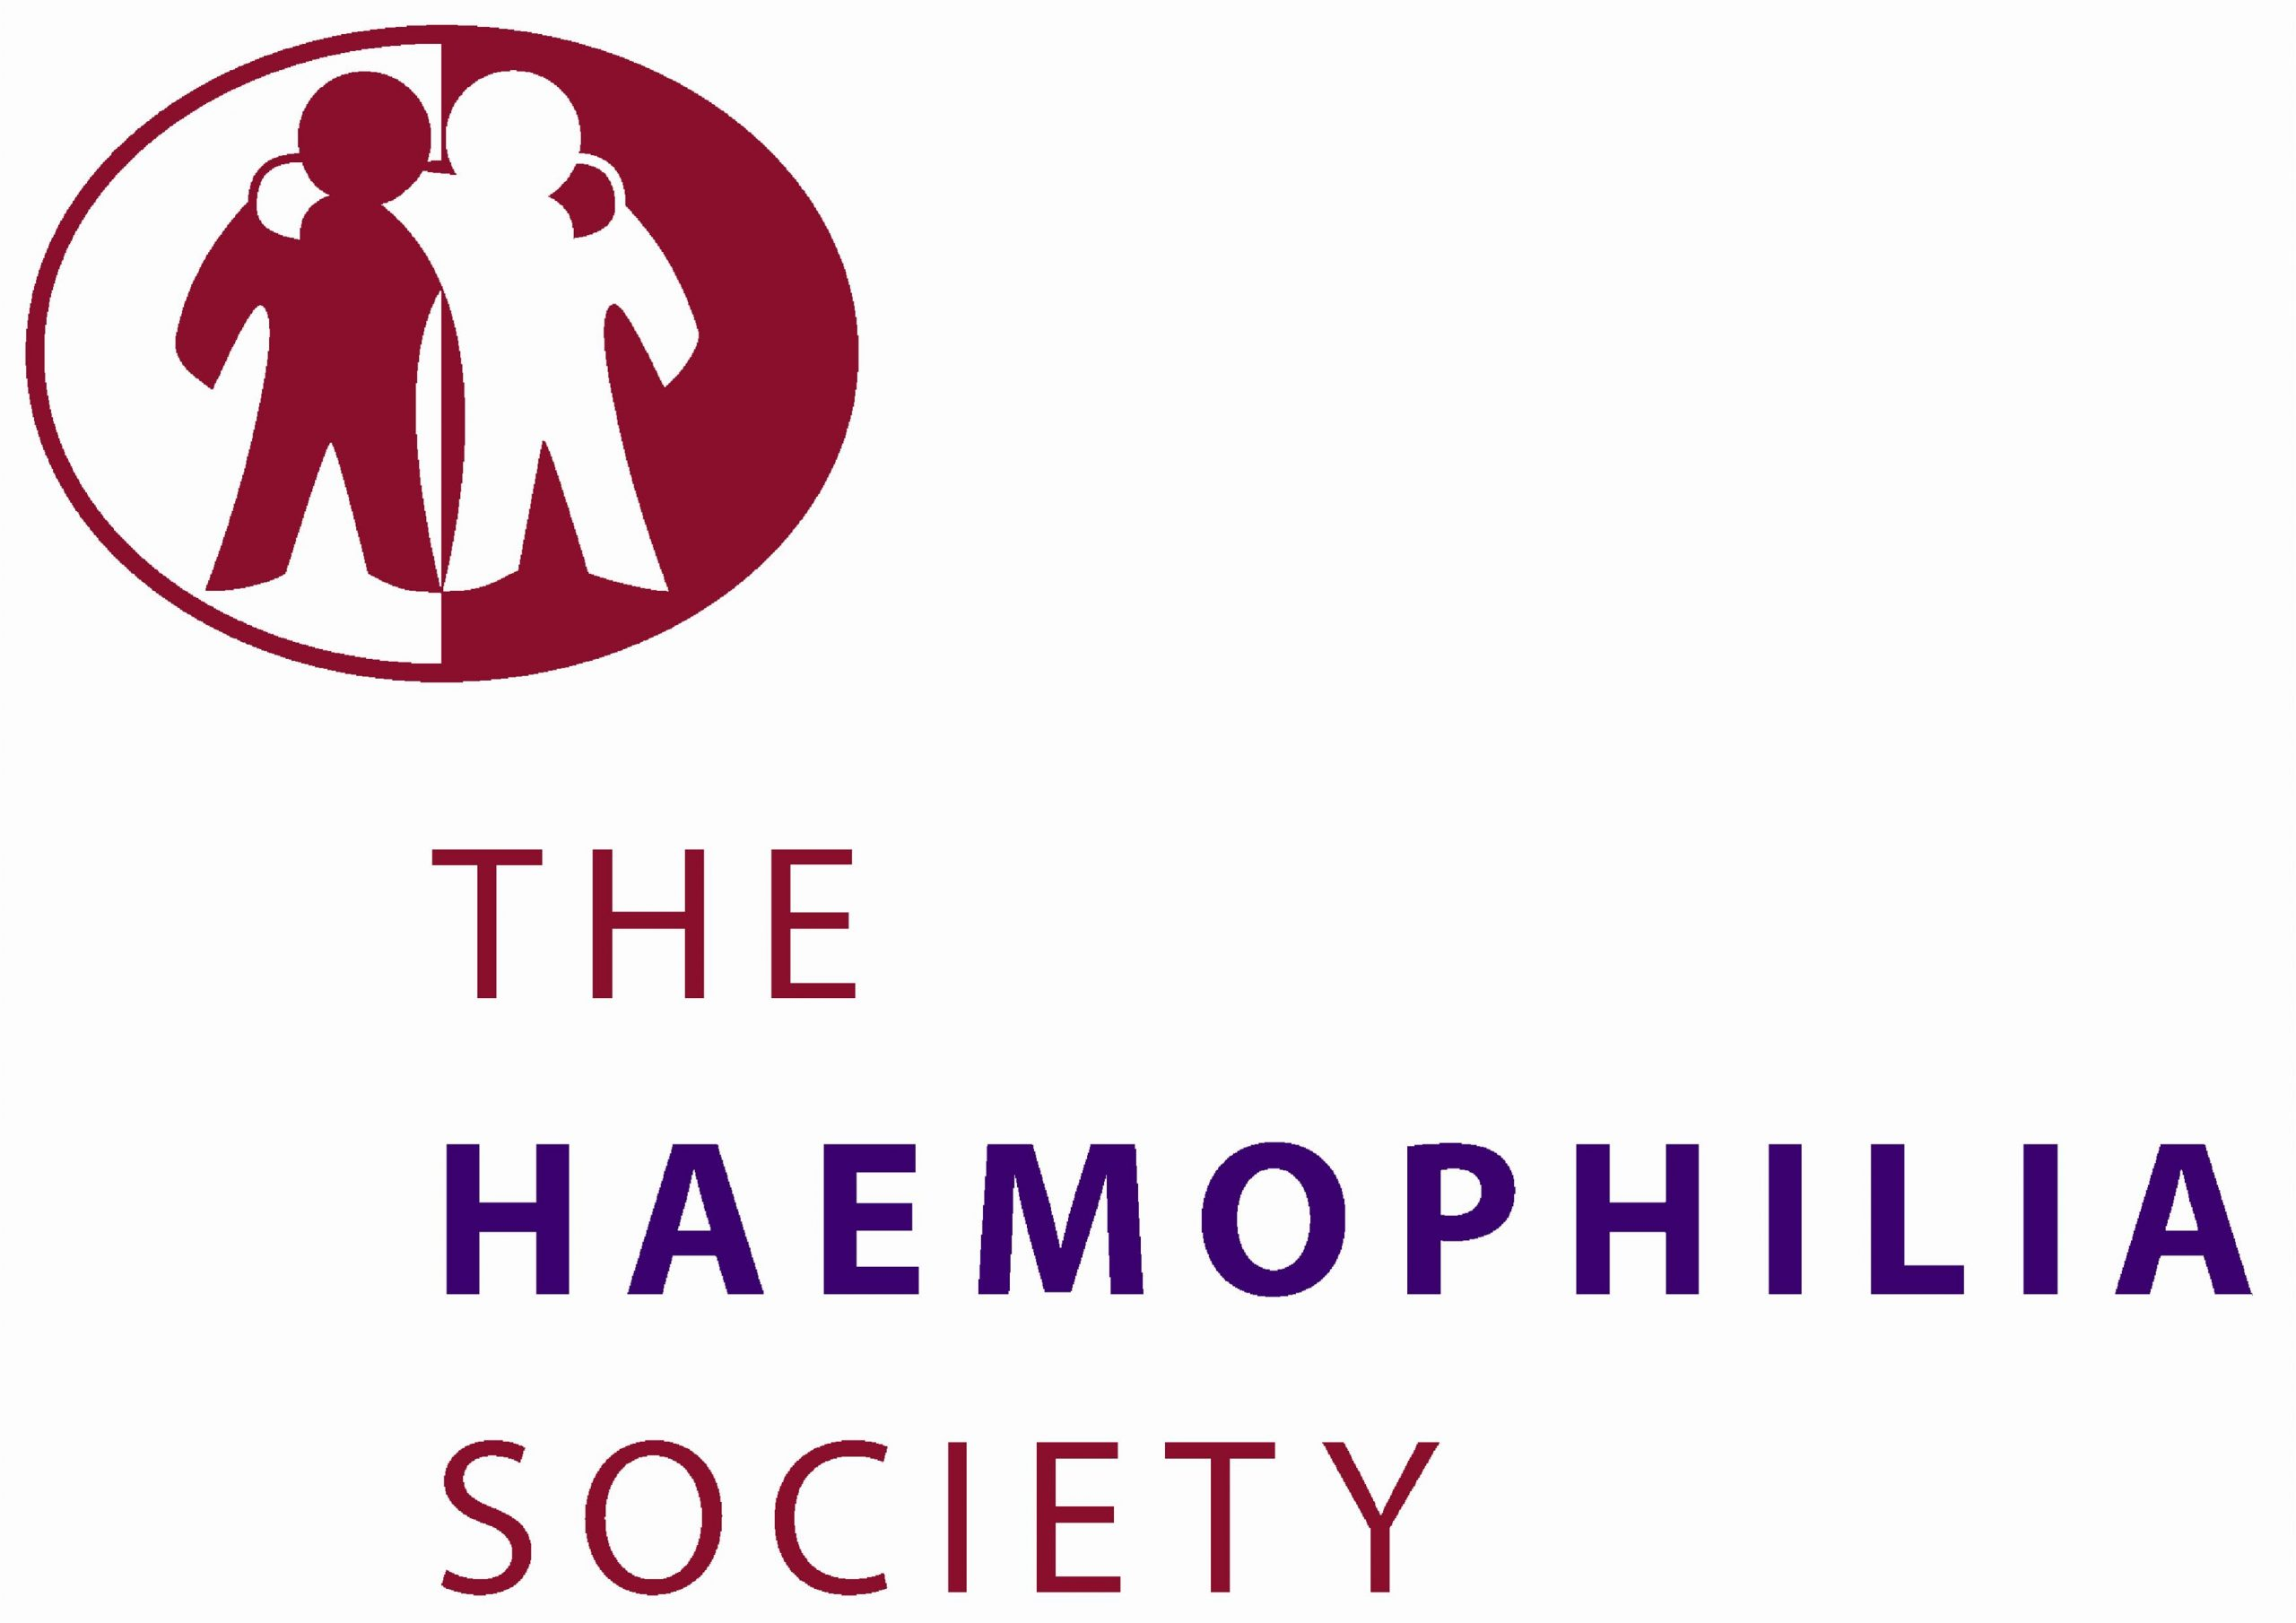 The Haemophilia Society endorse HBDCA